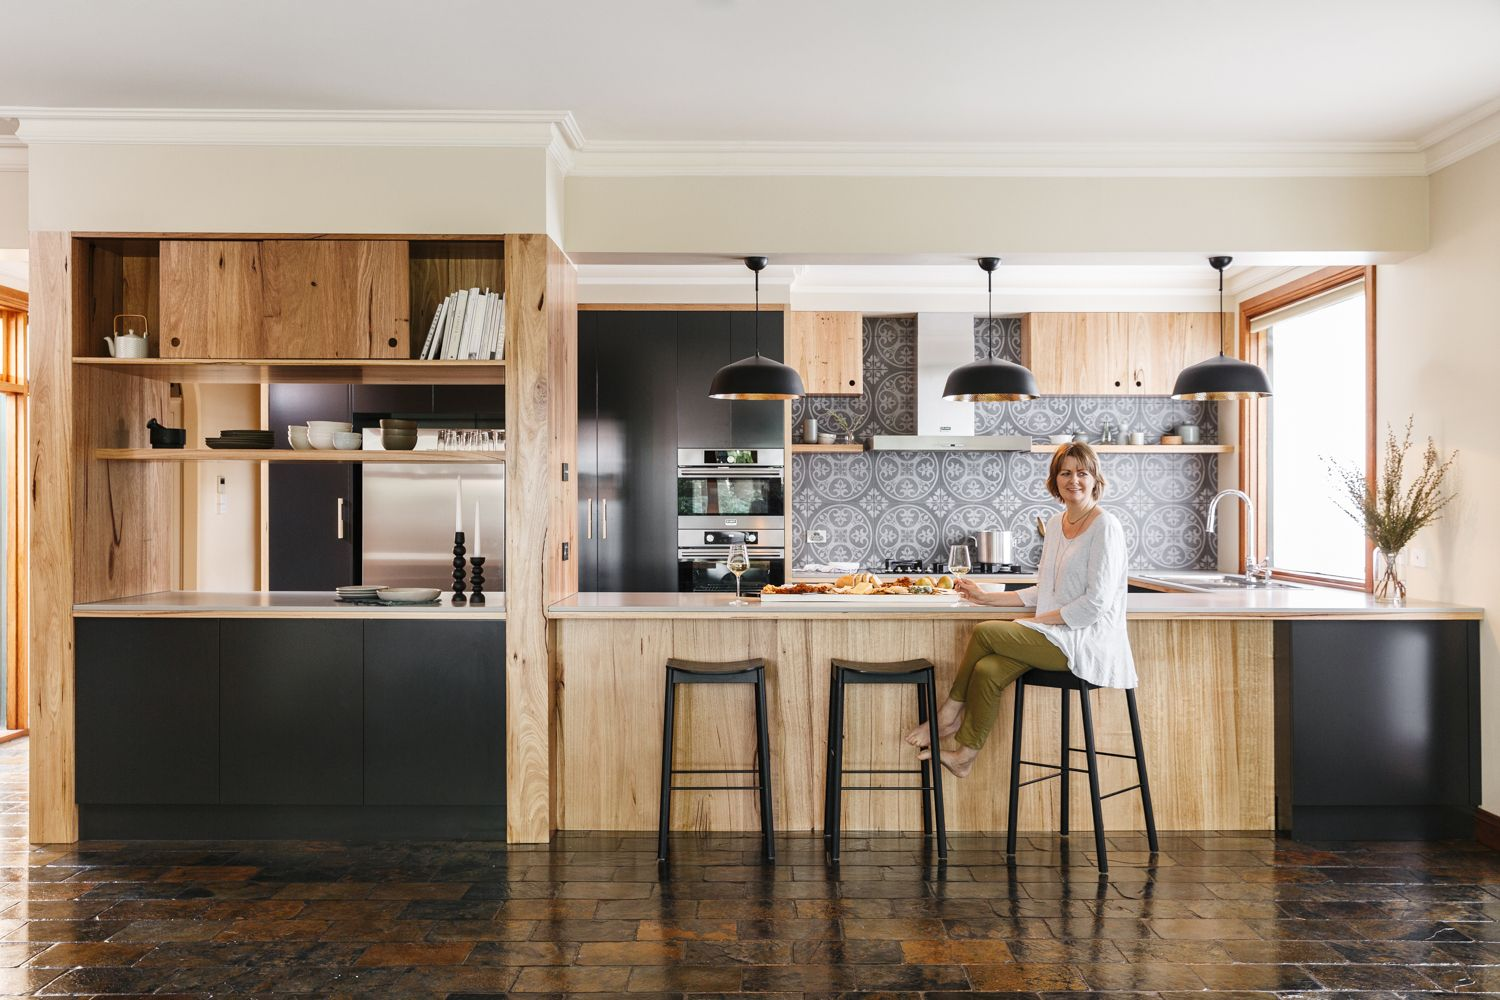 Modern Australian Kitchen With Warmth Of Timber And Earthy Tones